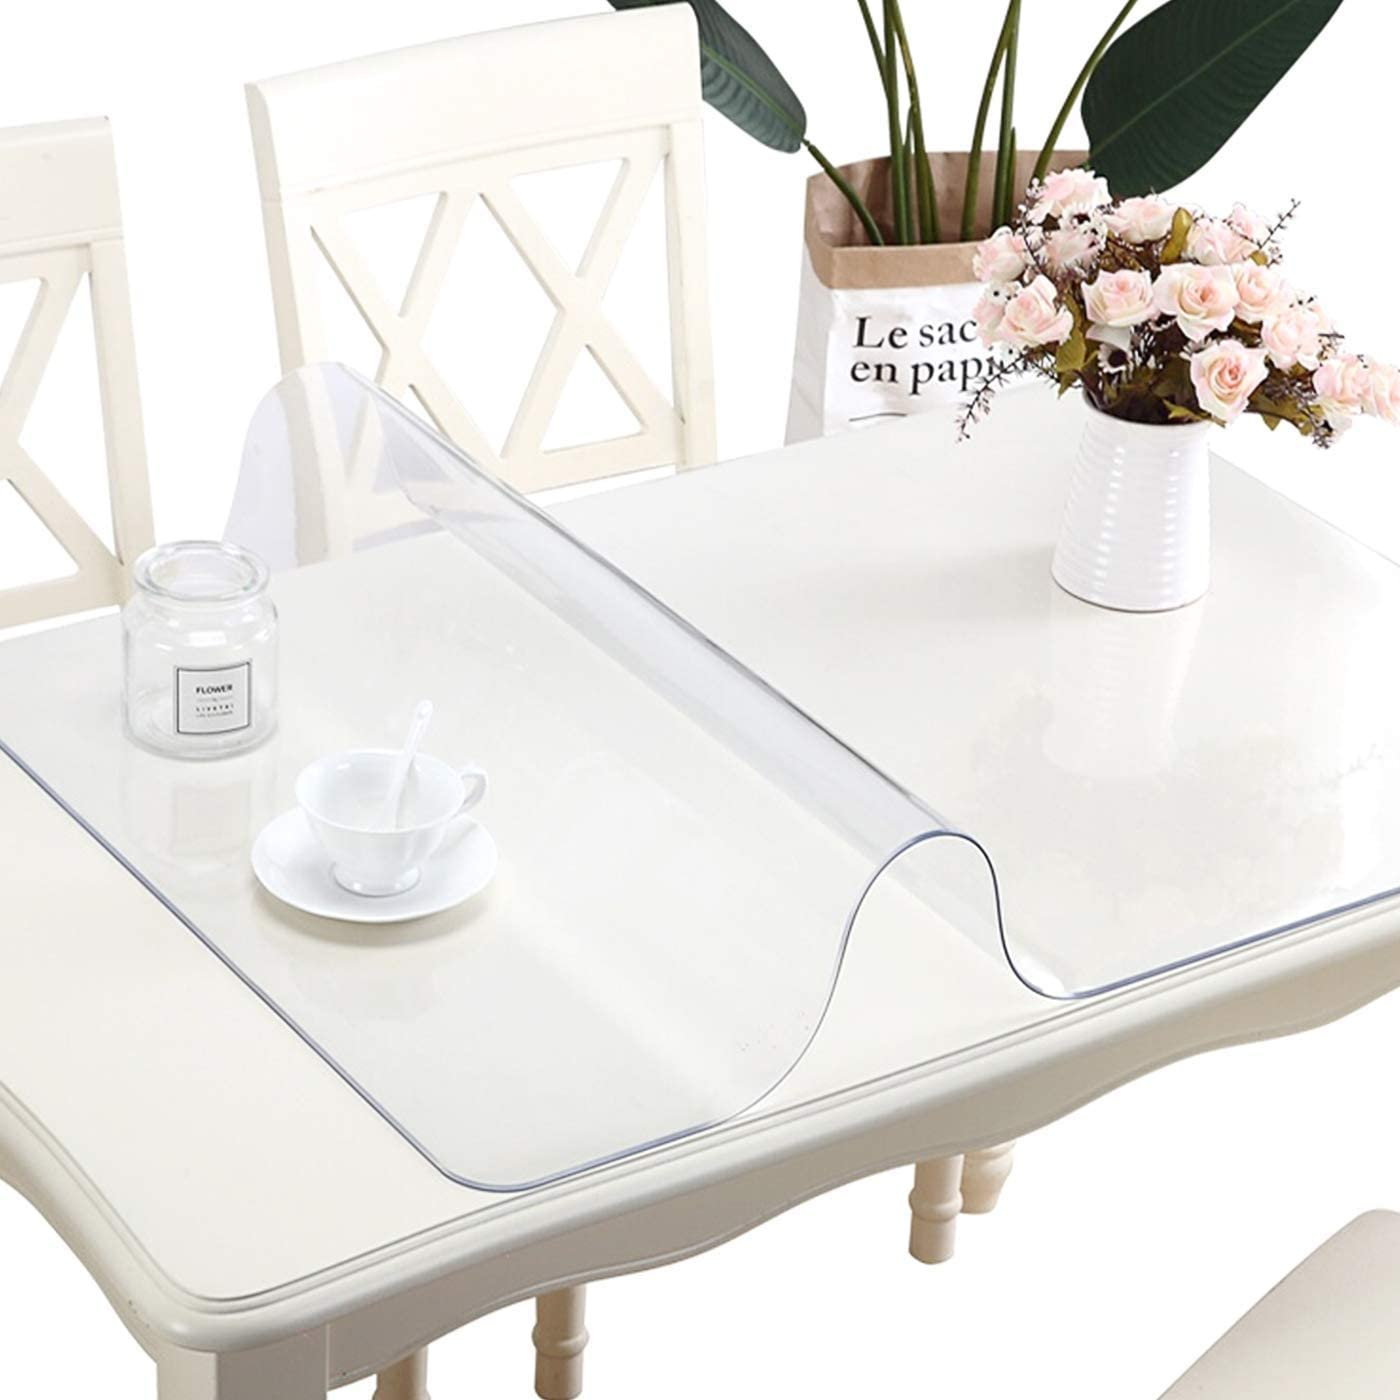 40X80 Inch 1.5mm Clear Plastic Protector Dining Portland Mall Jacksonville Mall Coffee Tab Table